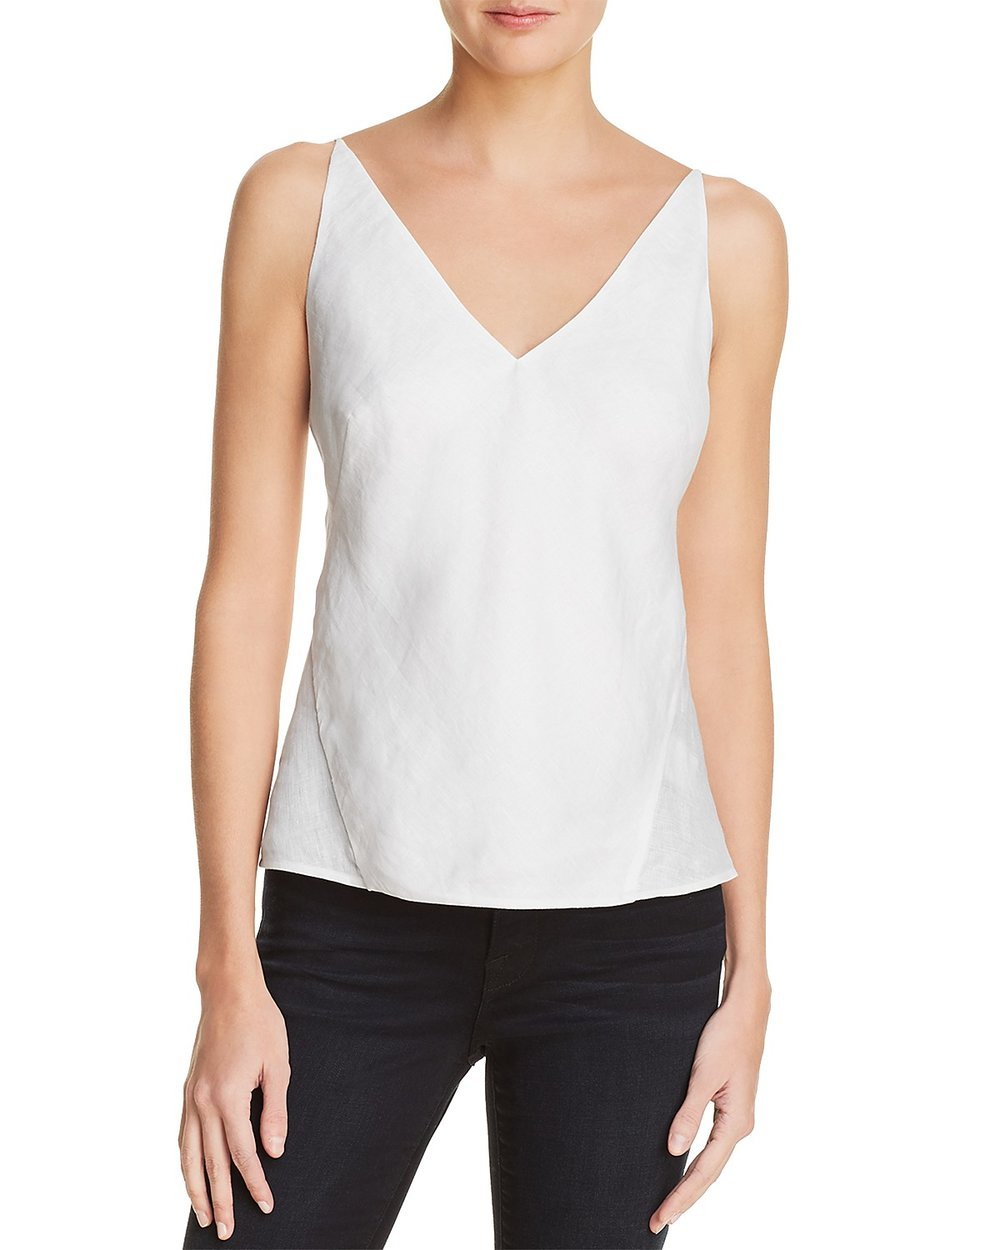 bloomingdales-whitejbrandlucycamisoletop.jpg